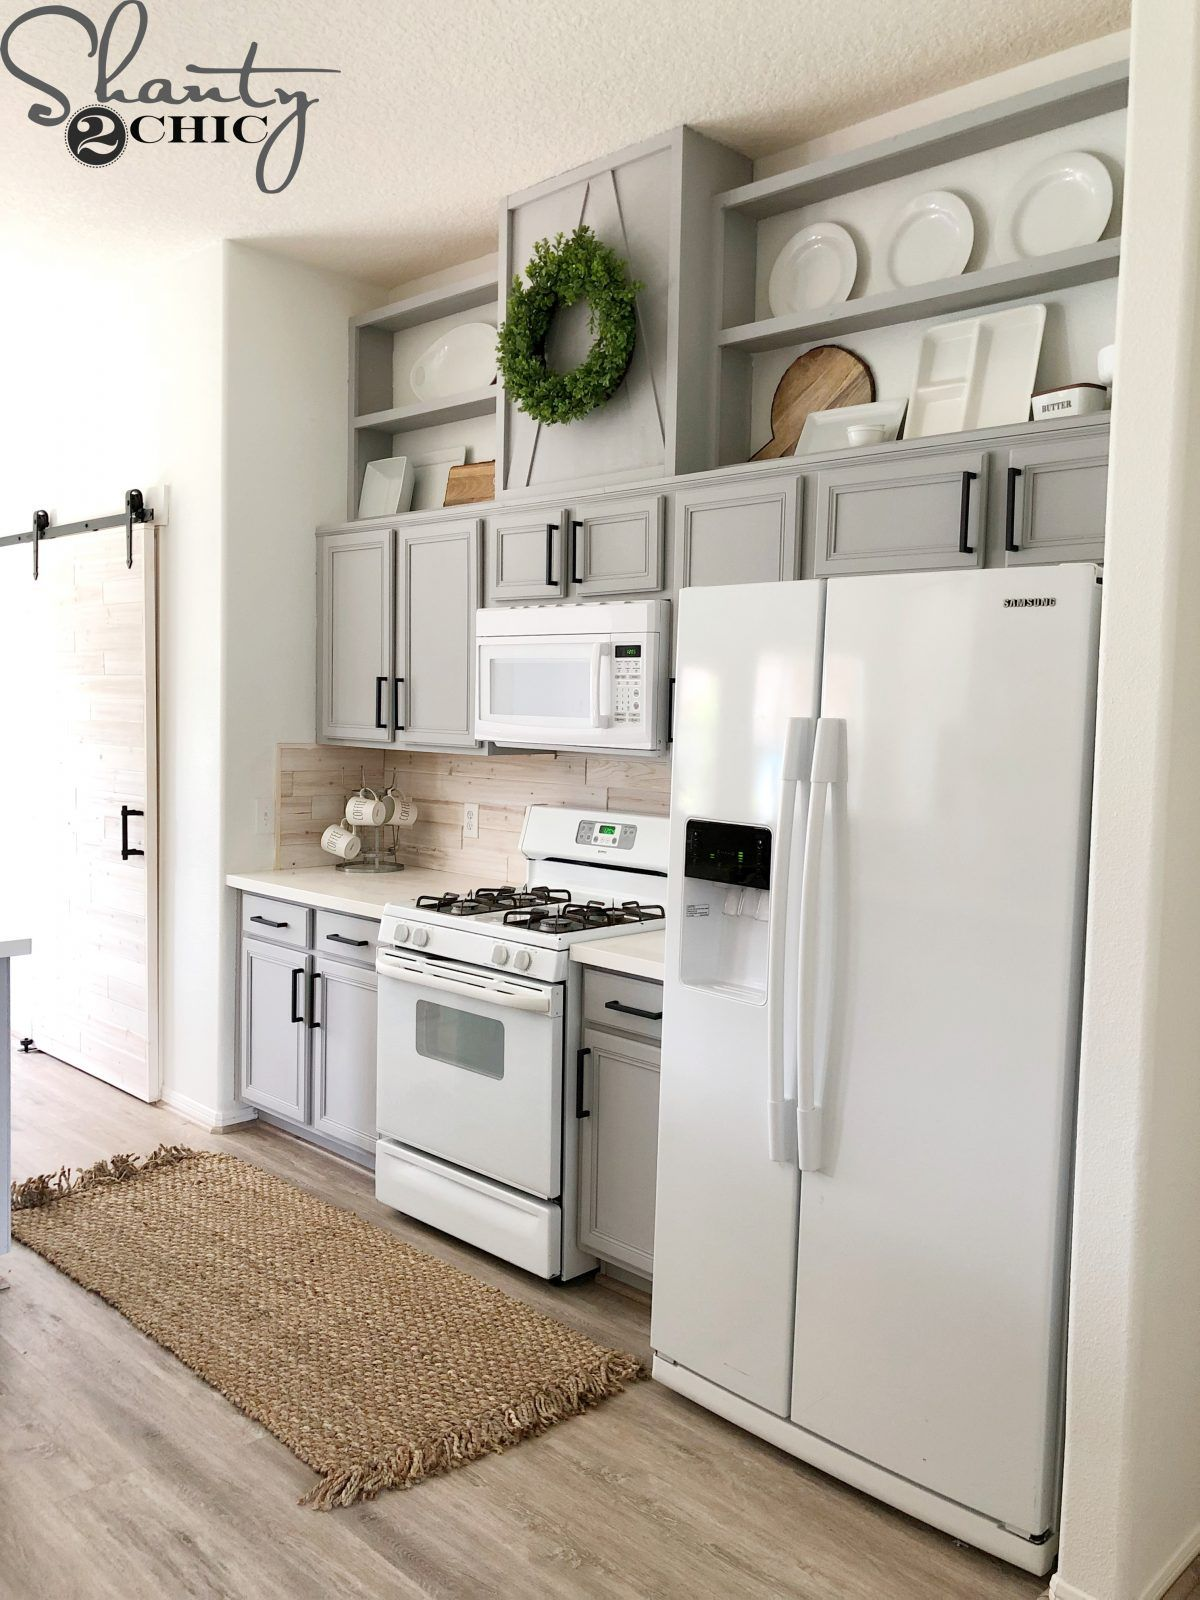 How to Make Cabinets Taller | Kitchens | Kitchen cabinets ...